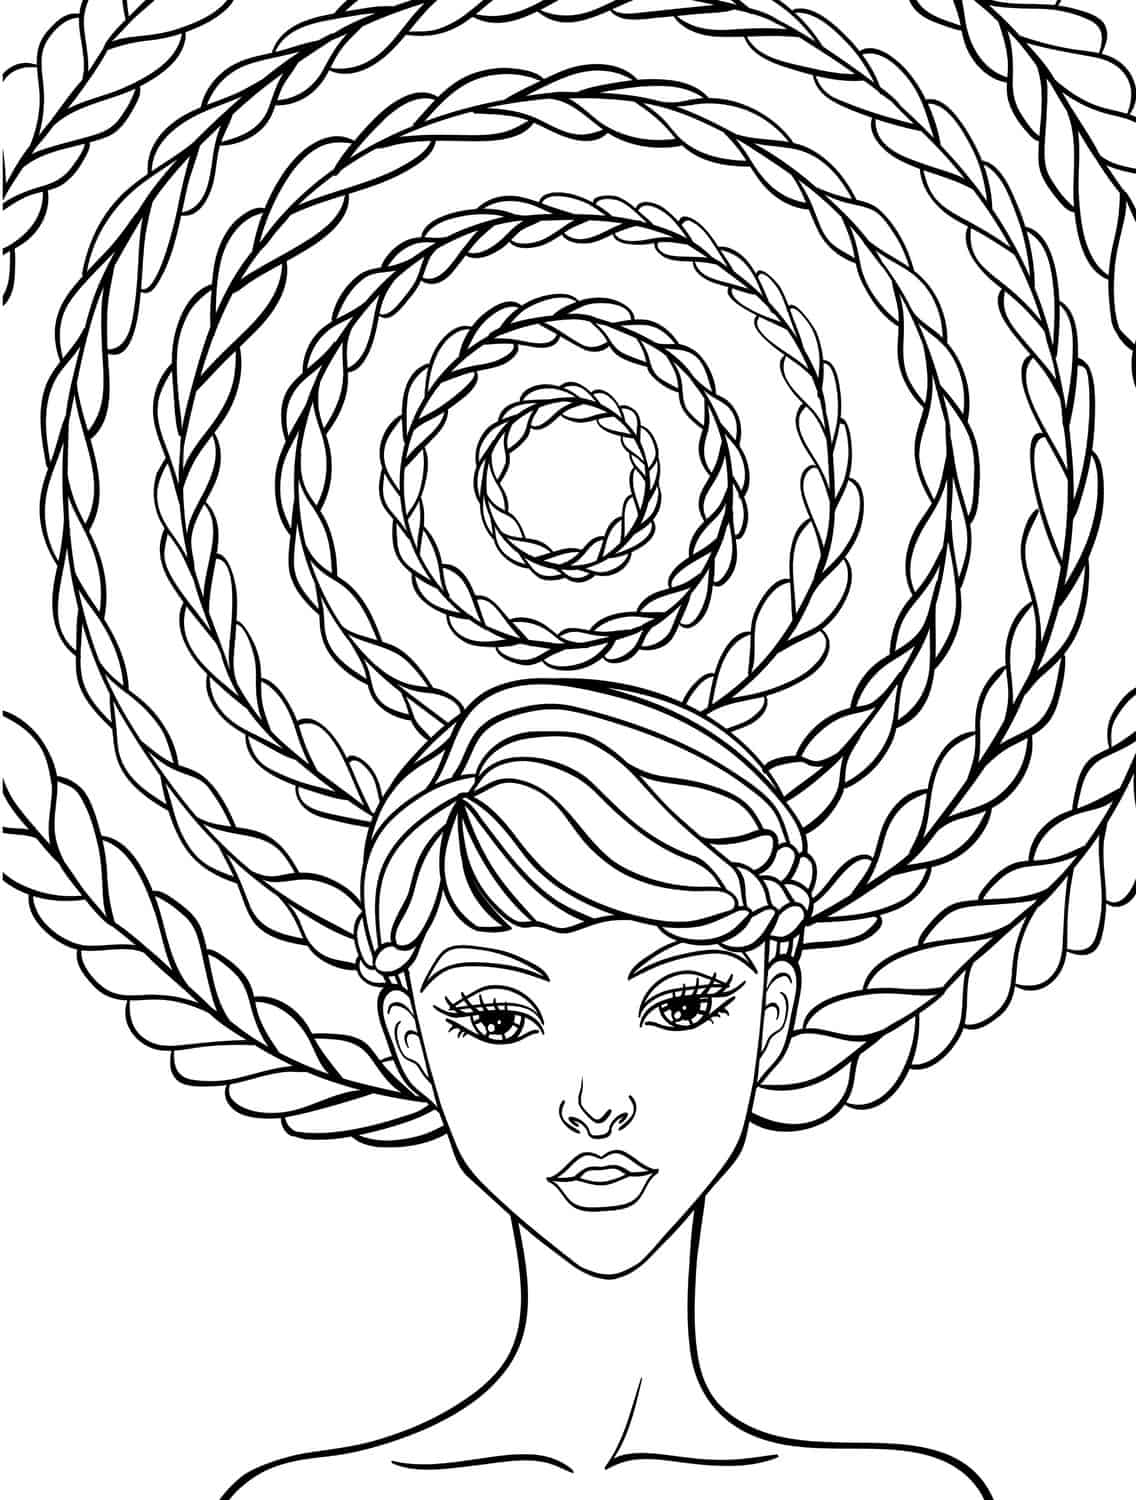 hair colouring pages curly hair coloring pages at getcoloringscom free pages hair colouring